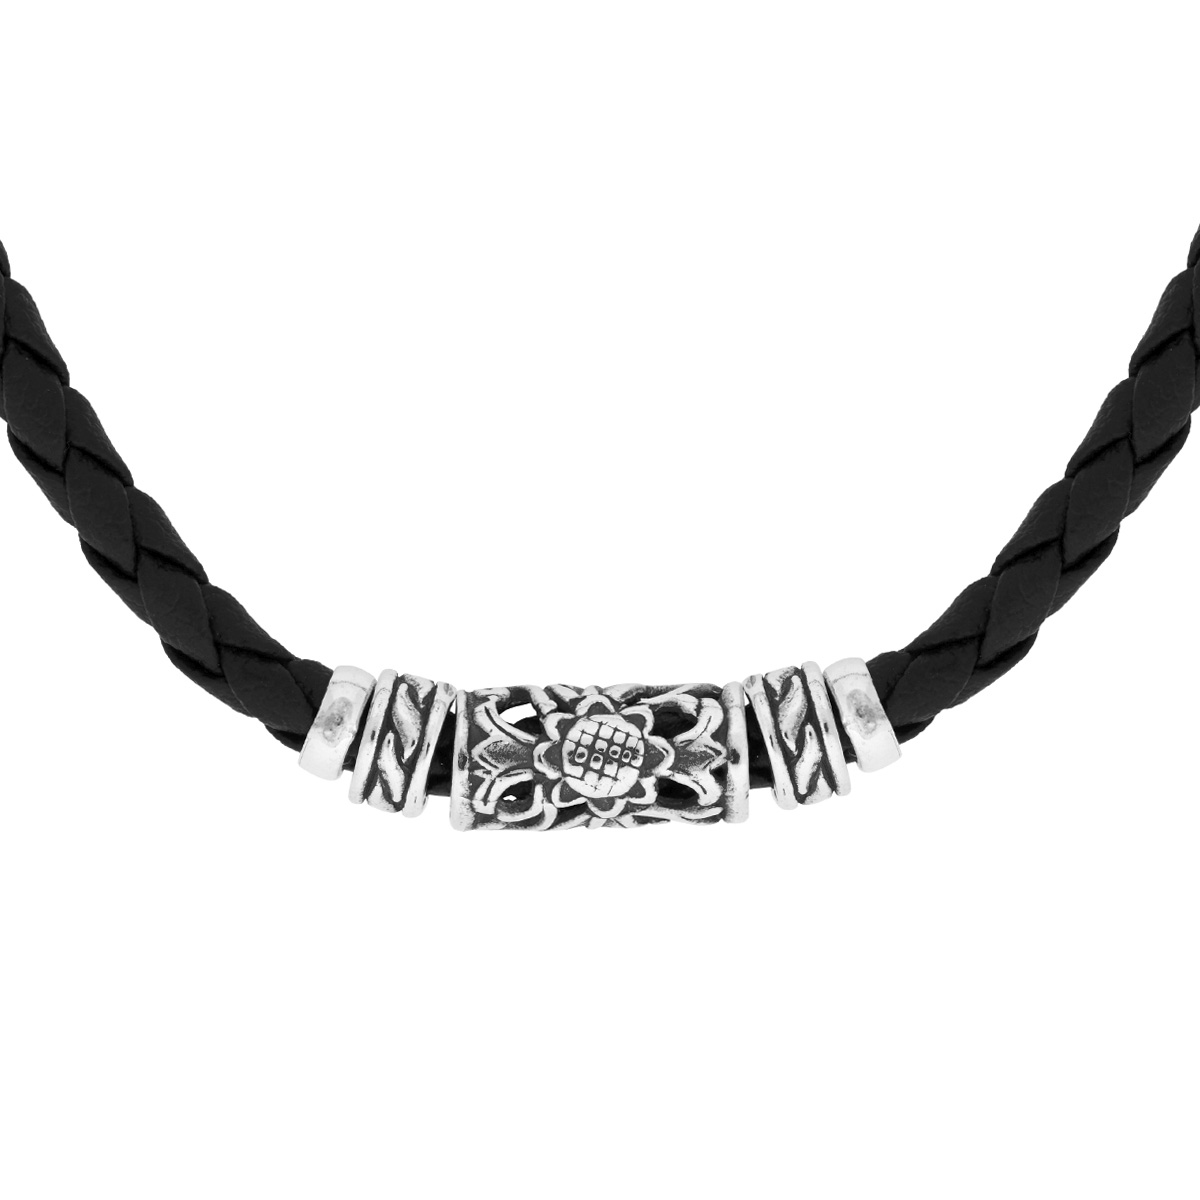 Lempuyang Silver Necklace - Handcrafted Sterling Silver Jewellery from Bali by Nusa